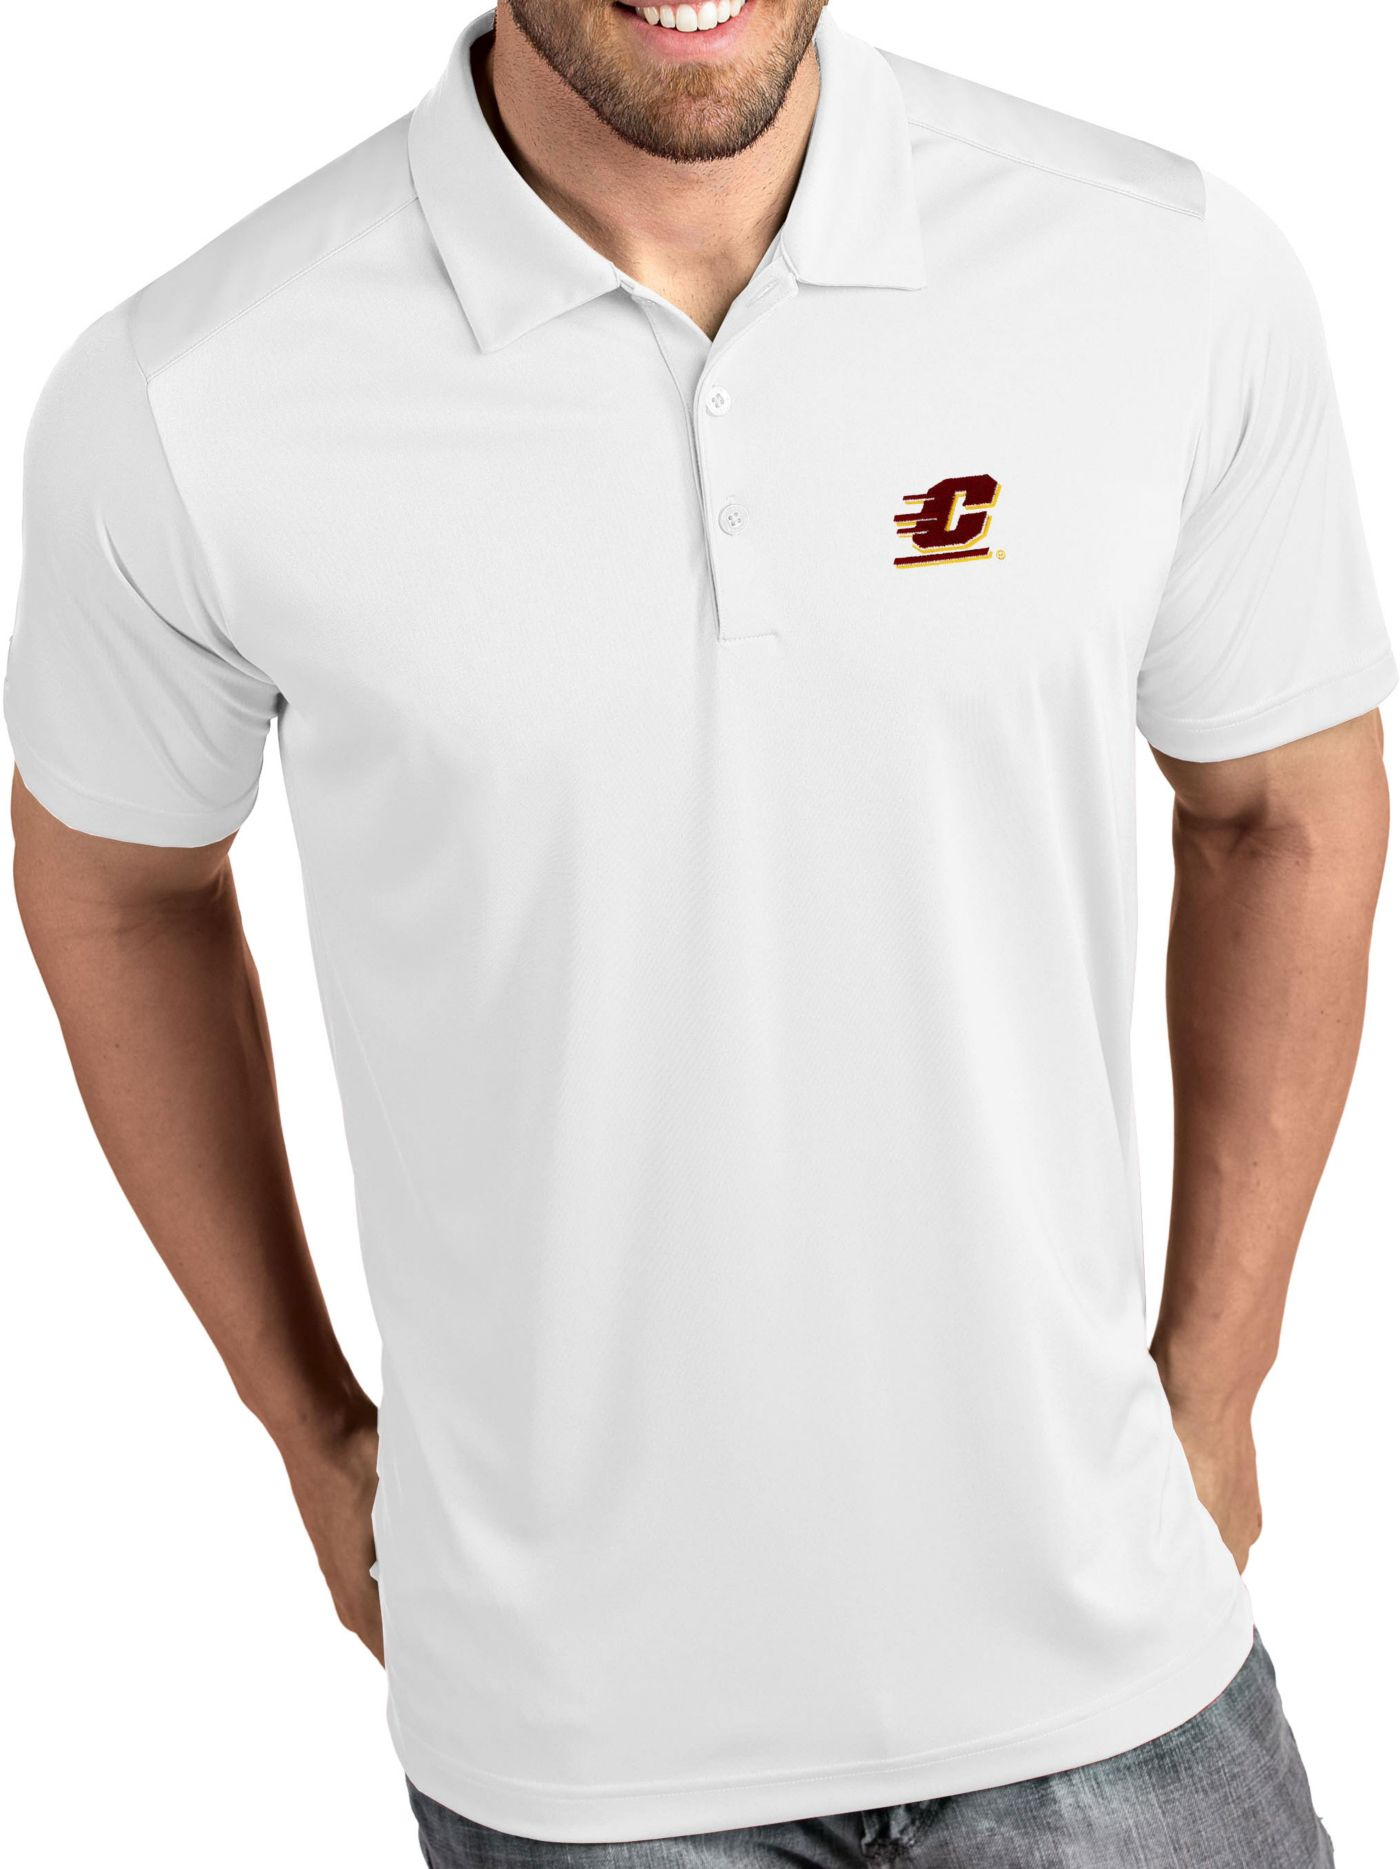 Antigua Men's Central Michigan Chippewas Tribute Performance White Polo